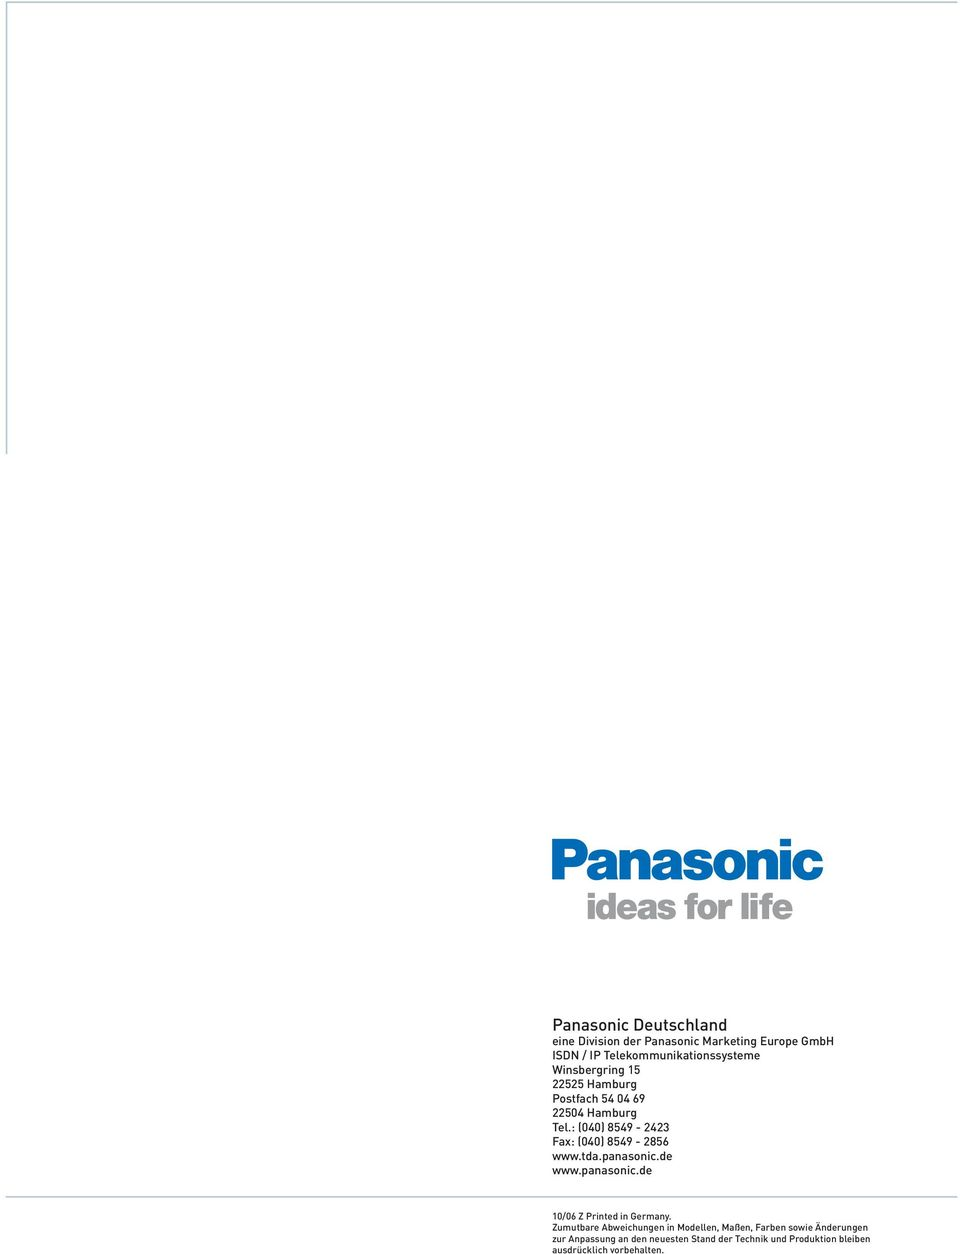 panasonic.de www.panasonic.de 10/06 Z Printed in Germany.